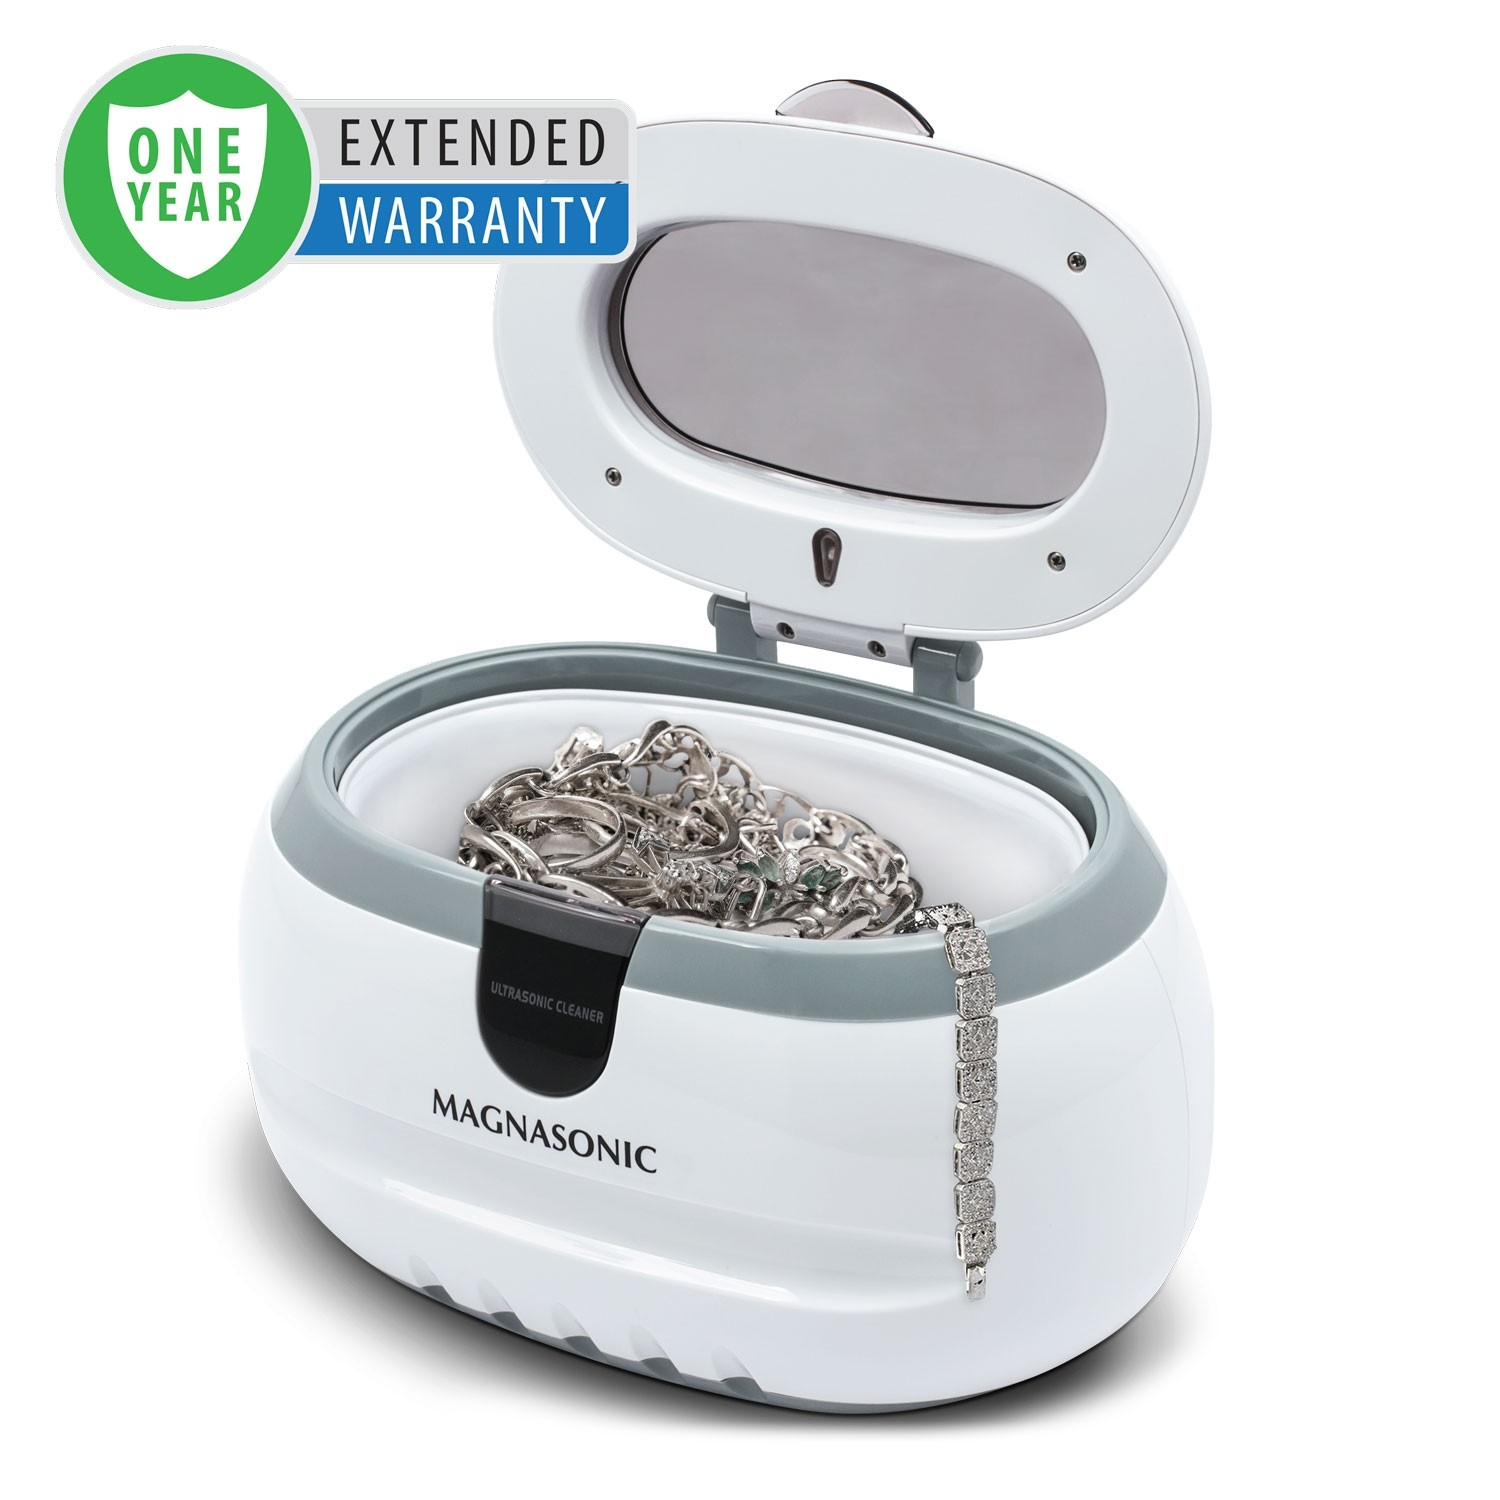 1 Year Warranty for the Professional Ultrasonic Jewelry & Eyeglass Cleaner